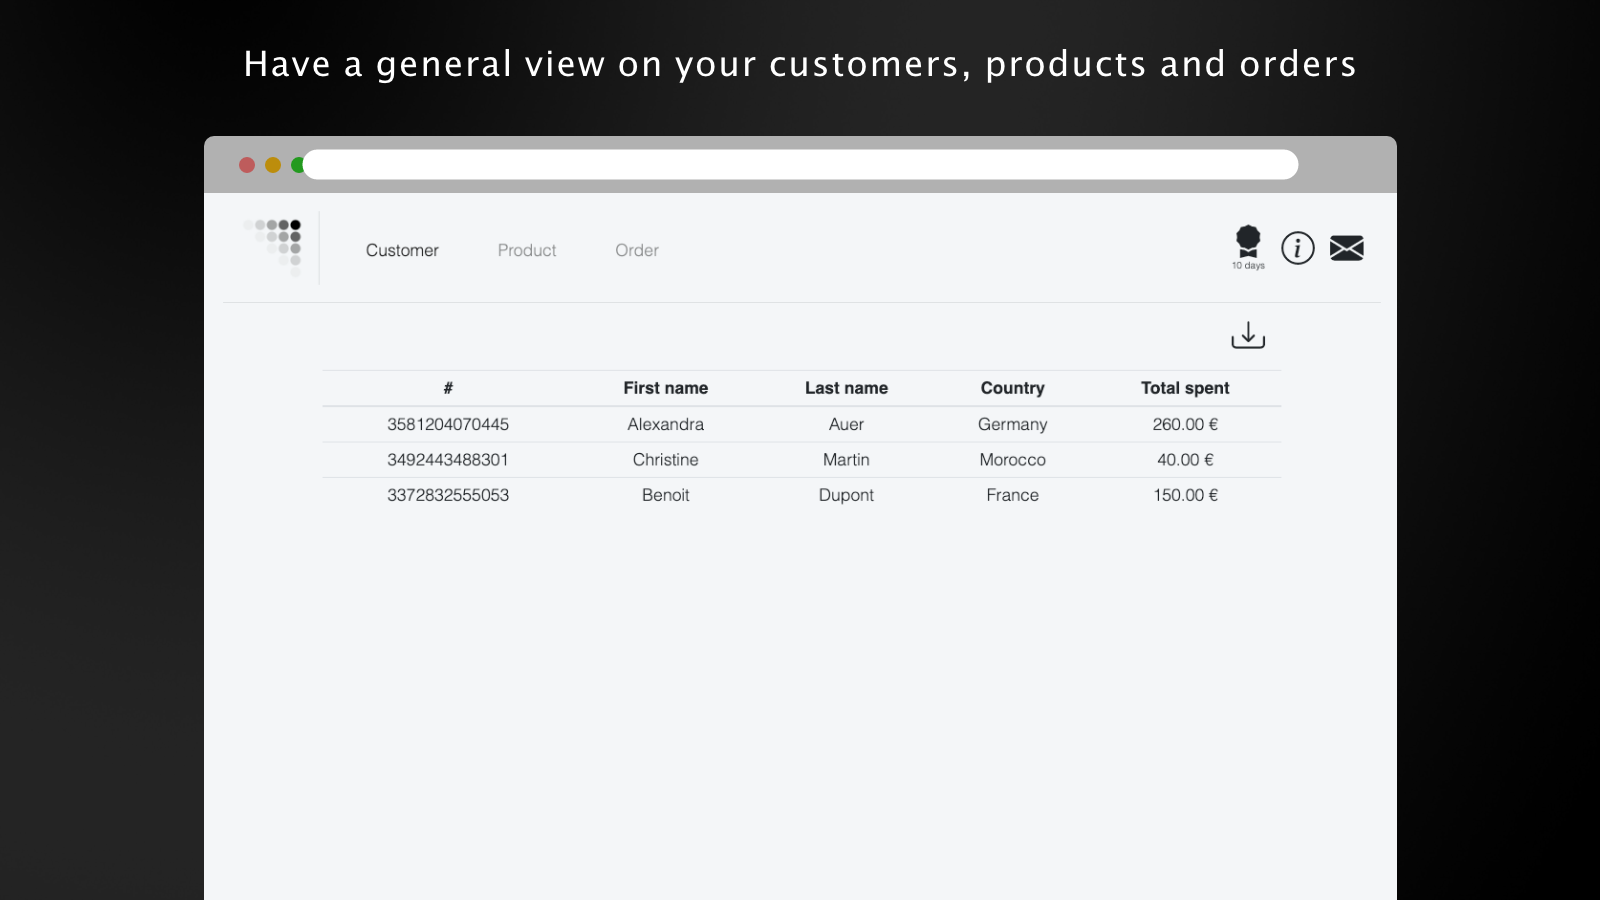 Have a general view on your customers, products and orders